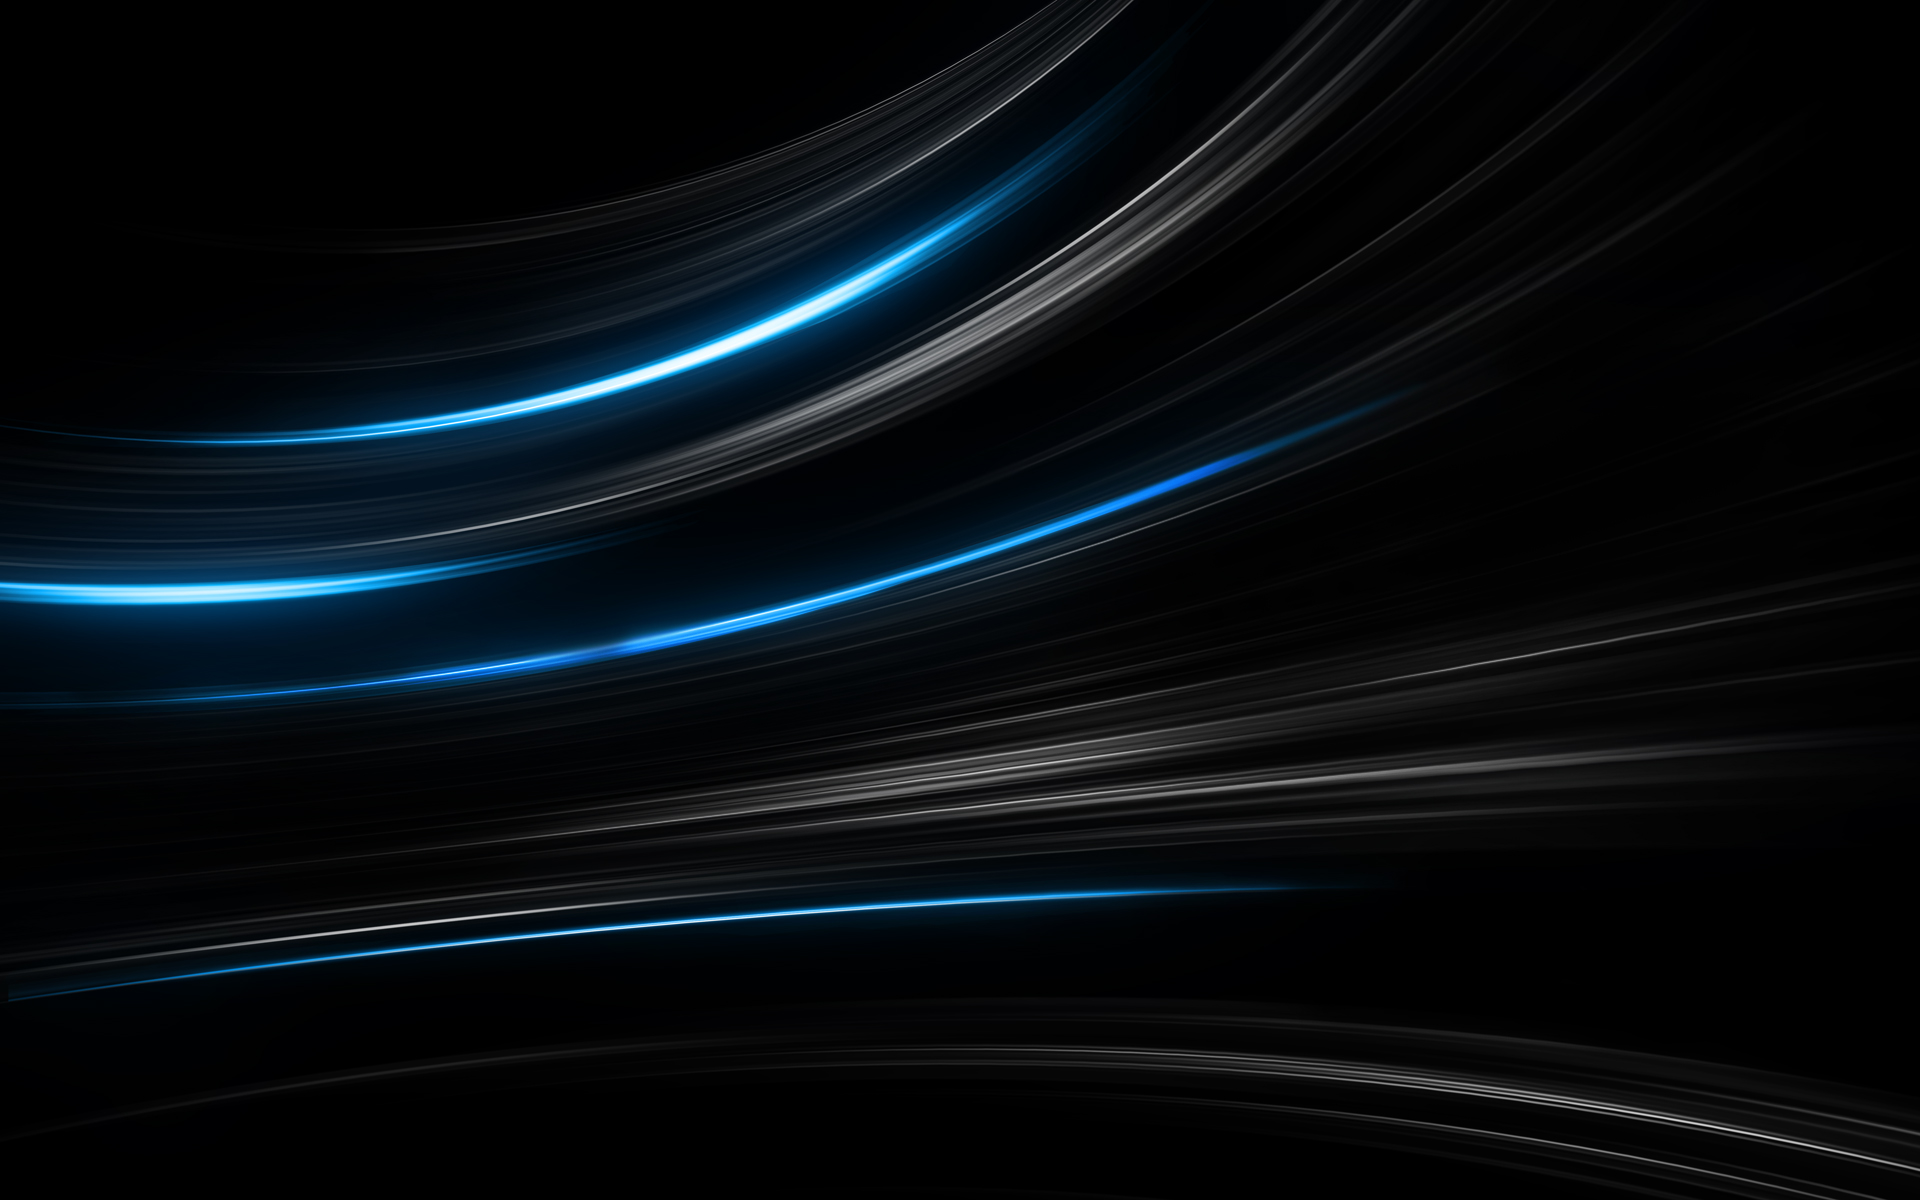 Blue Lights Png wallpaper 157127